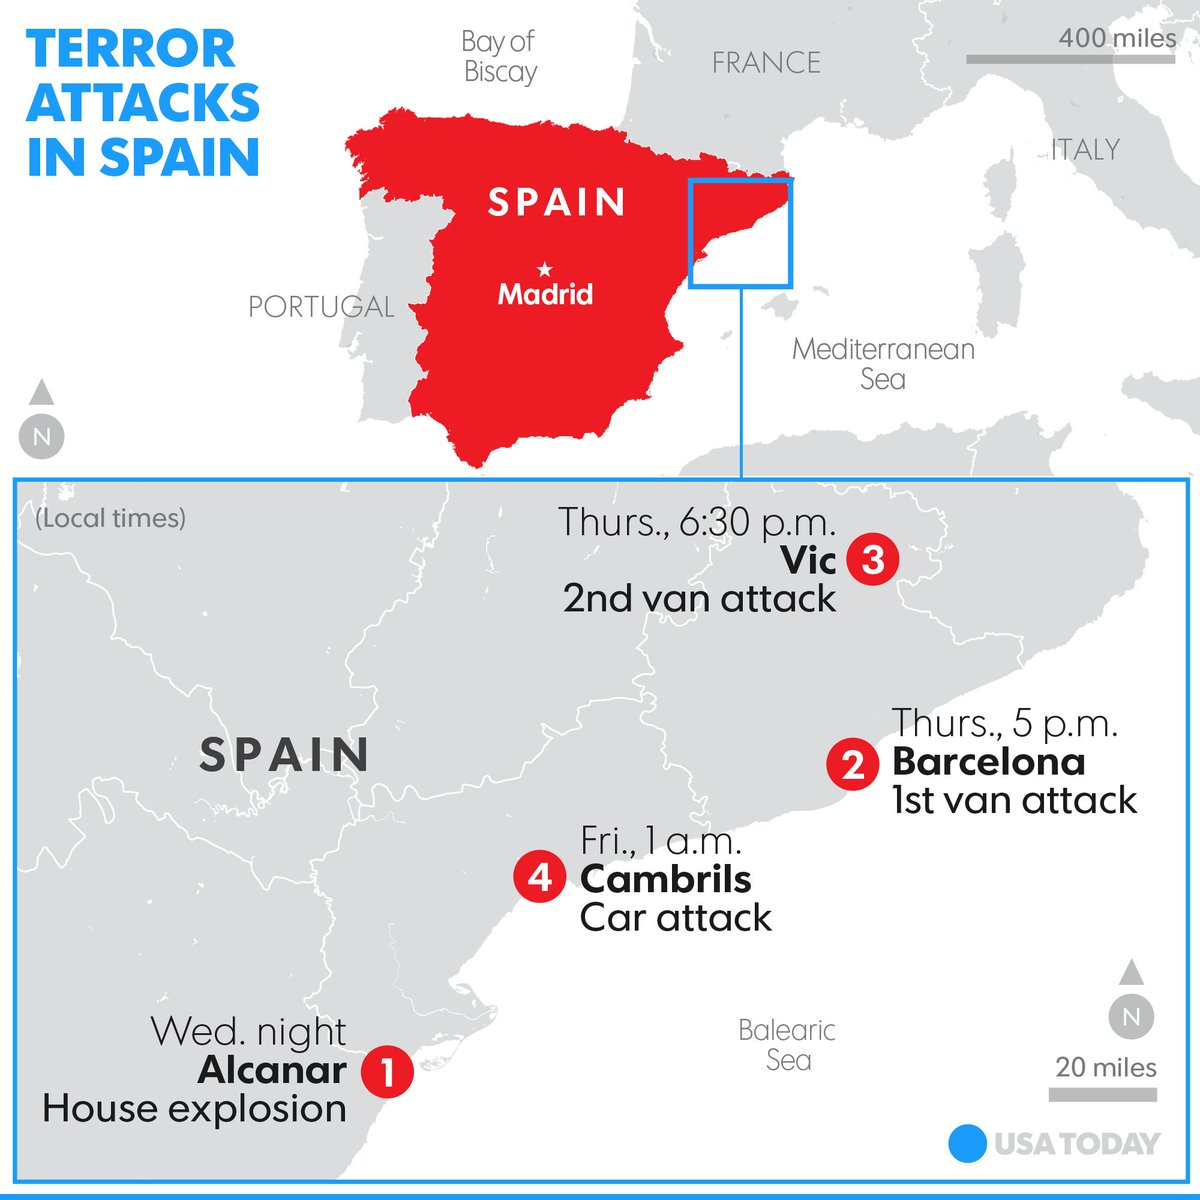 Everything we know about the terror attacks in Spain.